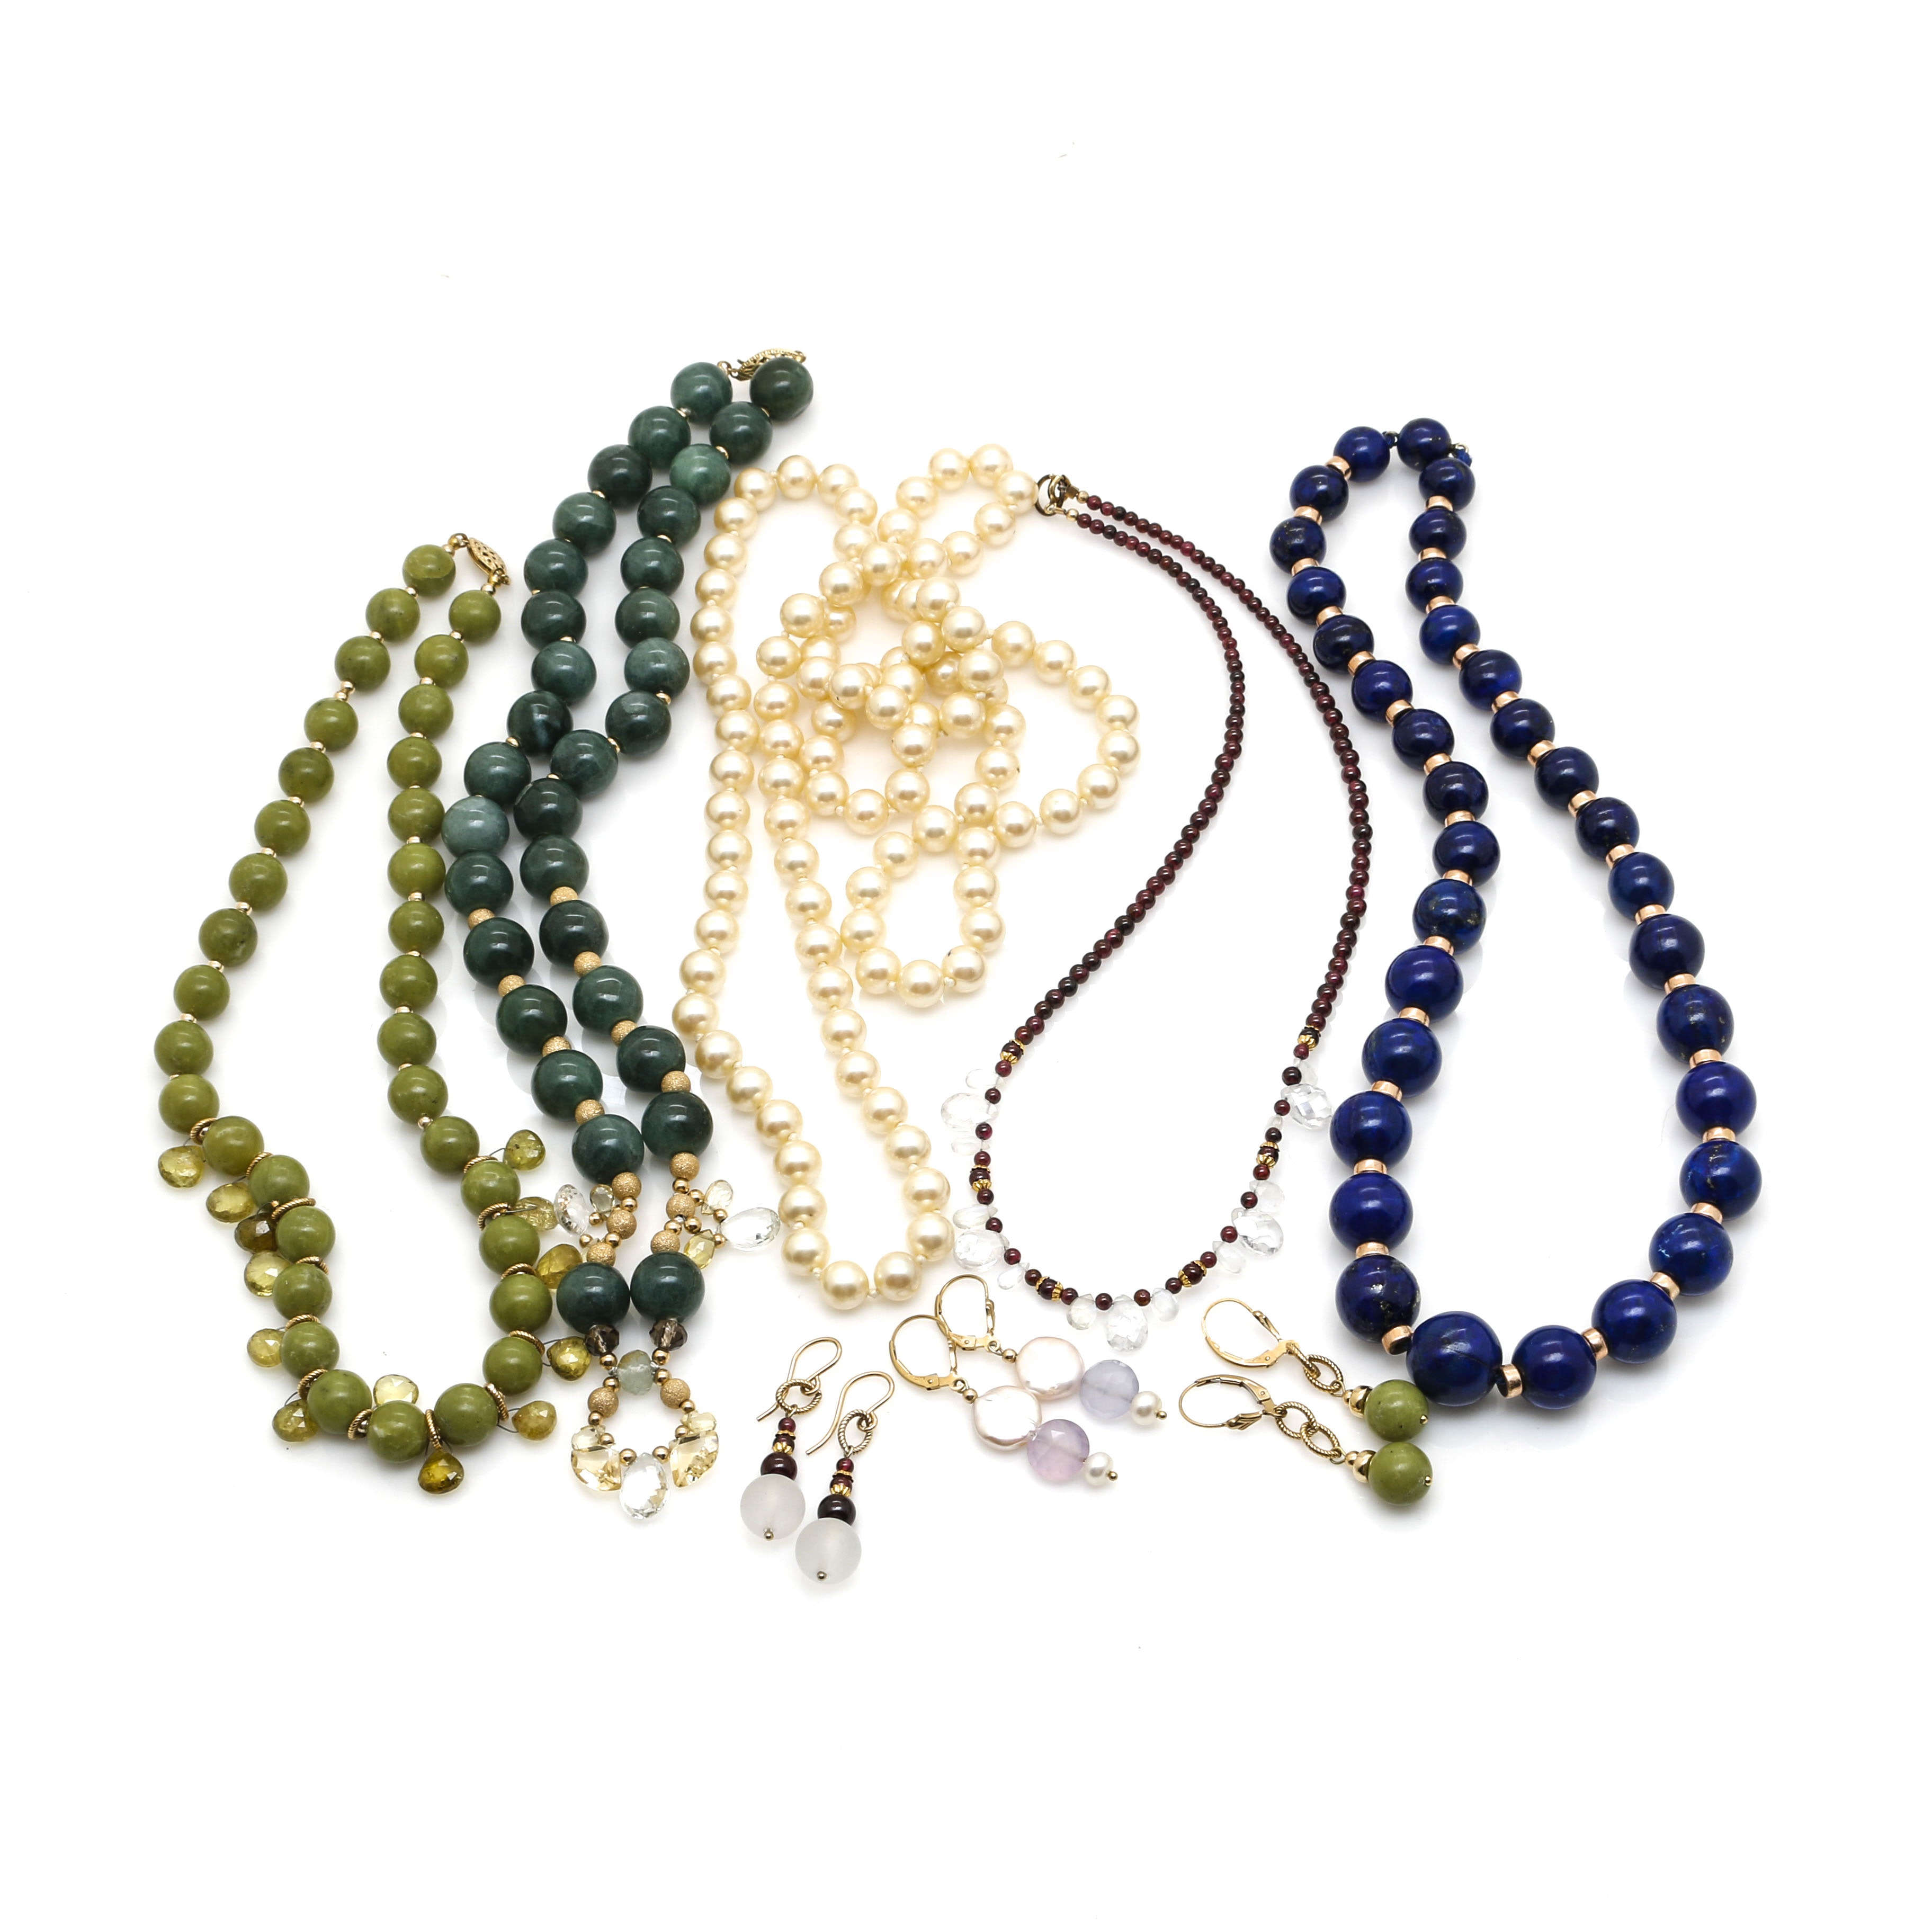 Assortment of Gold Filled and Beaded Costume Jewelry